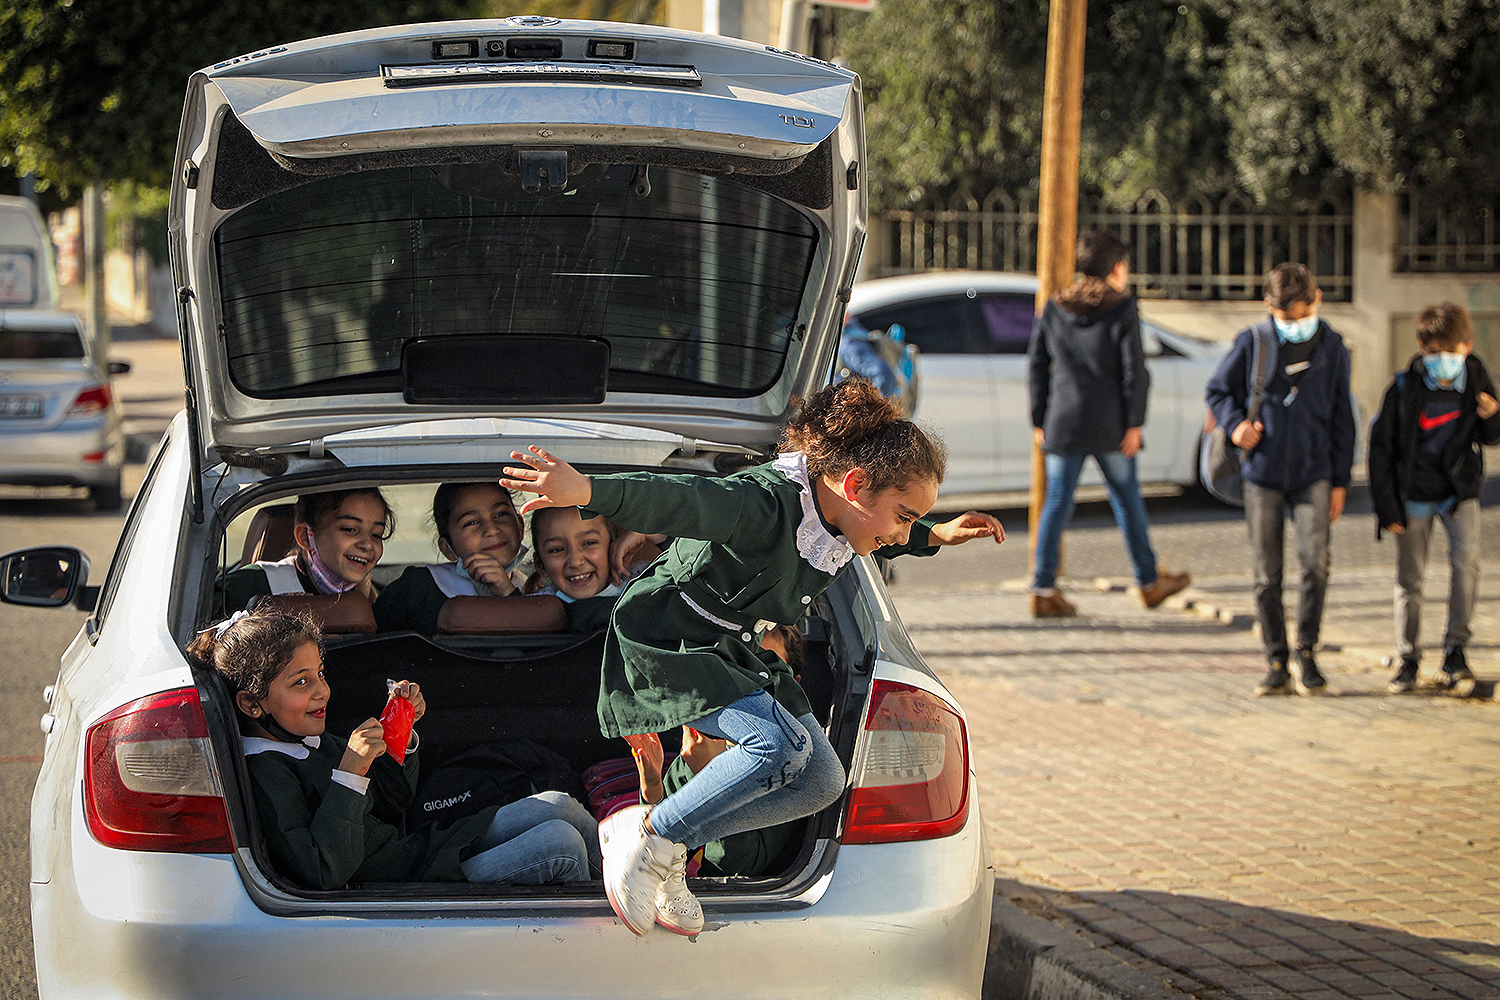 A schoolgirl leaps from the trunk of a car after leaving school in Gaza City on March 17. MOHAMMED ABED/AFP via Getty Images